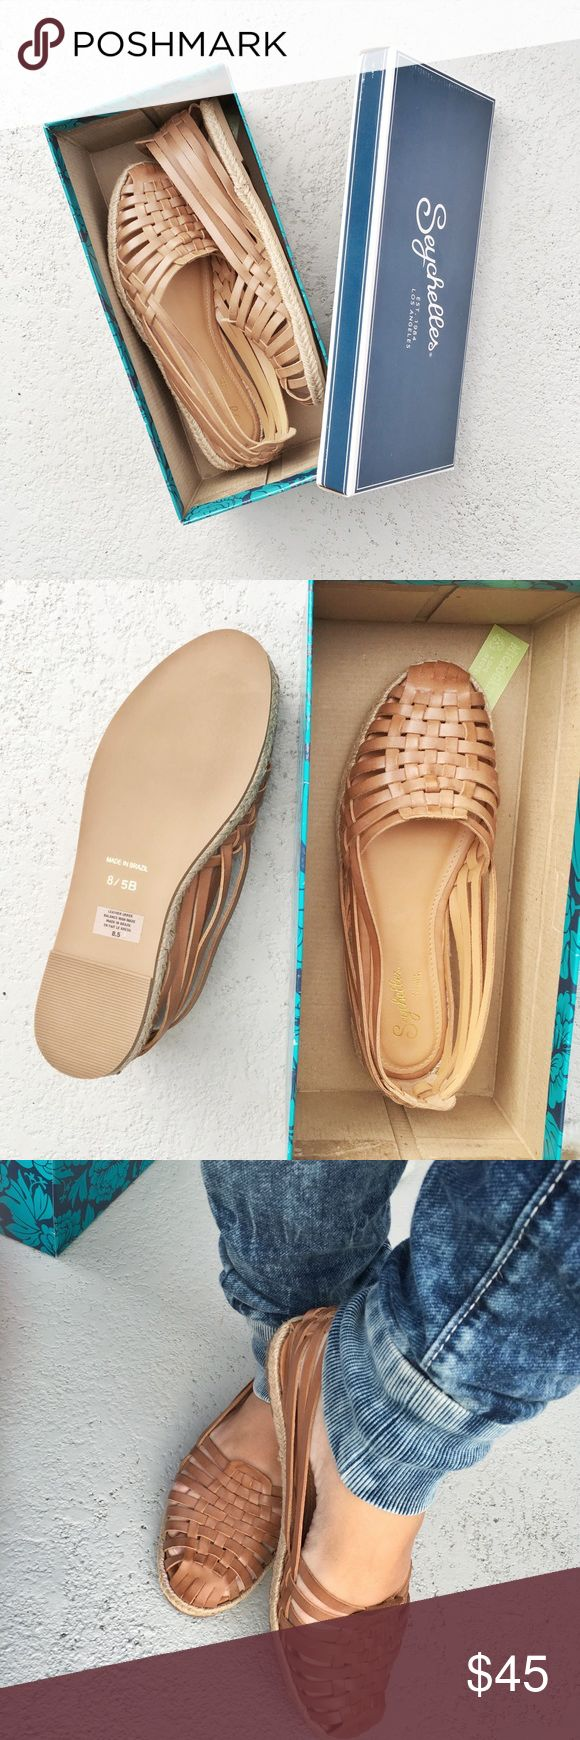 Leather tan sandals Genuine leather tan flats. True to size . Very comfy made in Brazil Seychelles Shoes